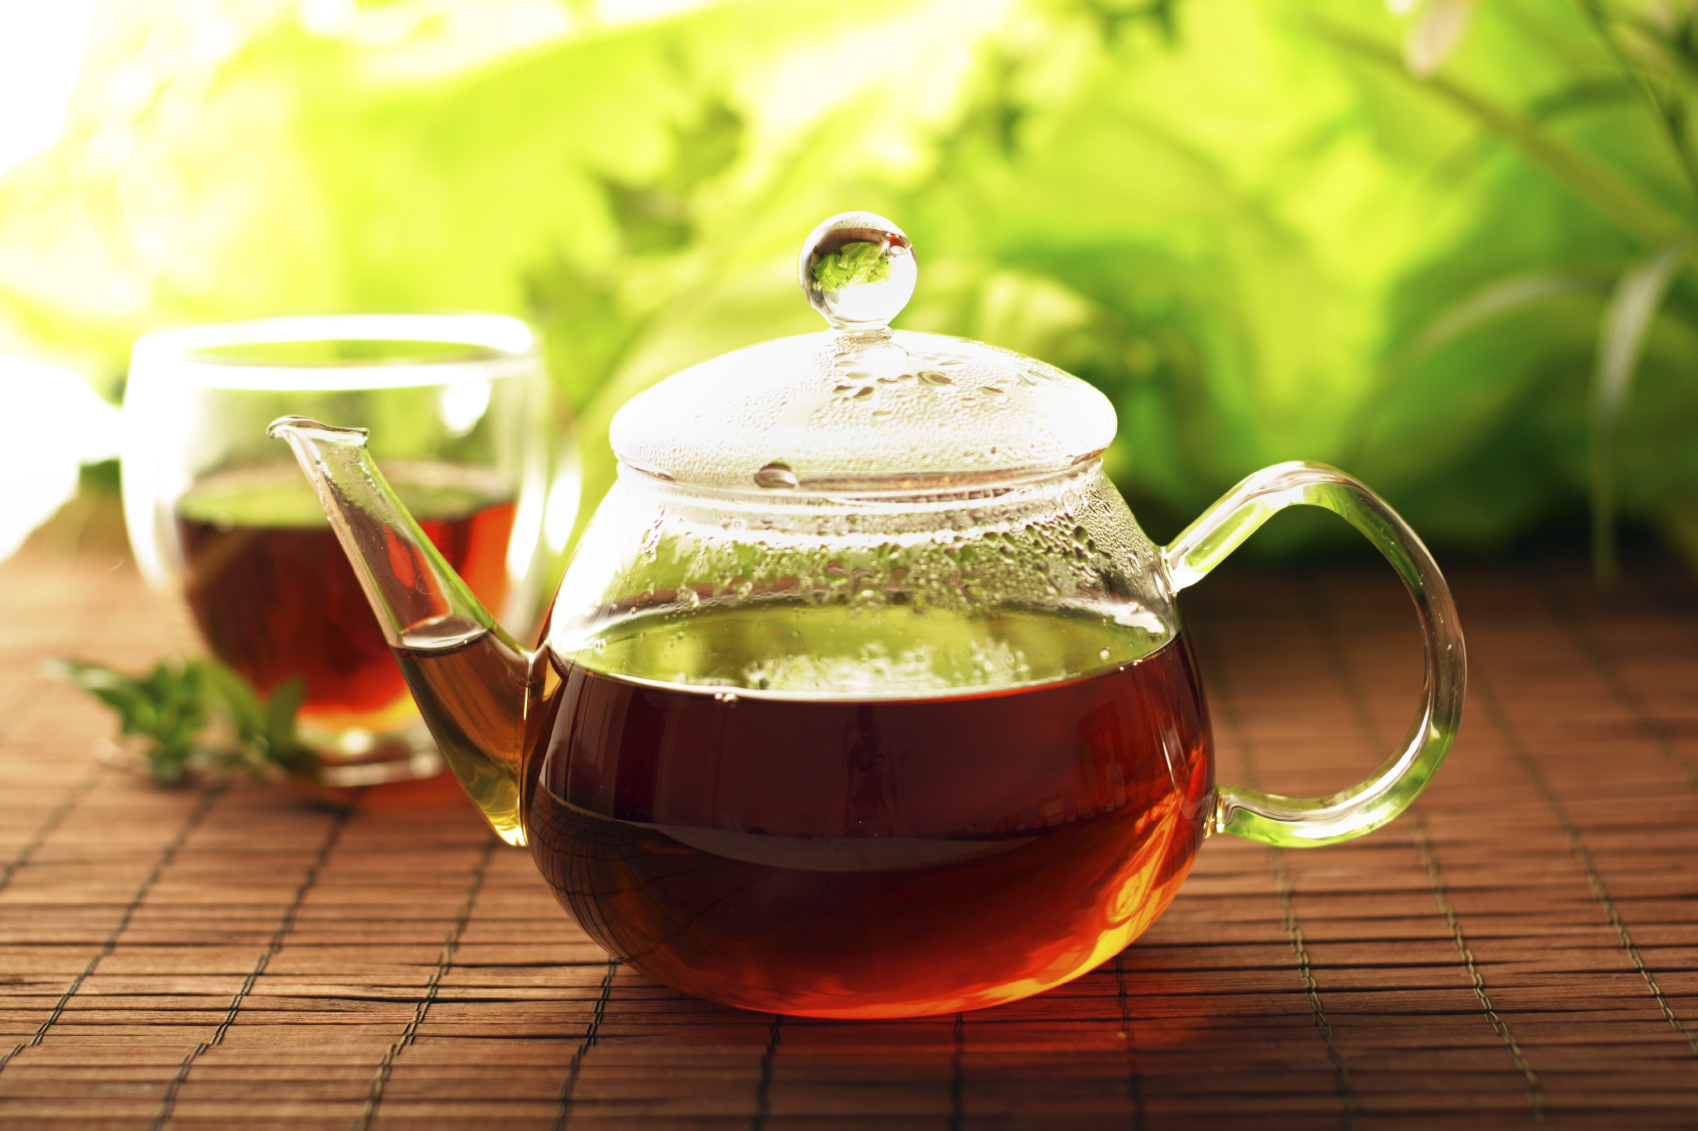 Black tea is loaded with health benefits you might not expect...from stronger bones to preventing heart disease. Here are five reasons to drink more of it.